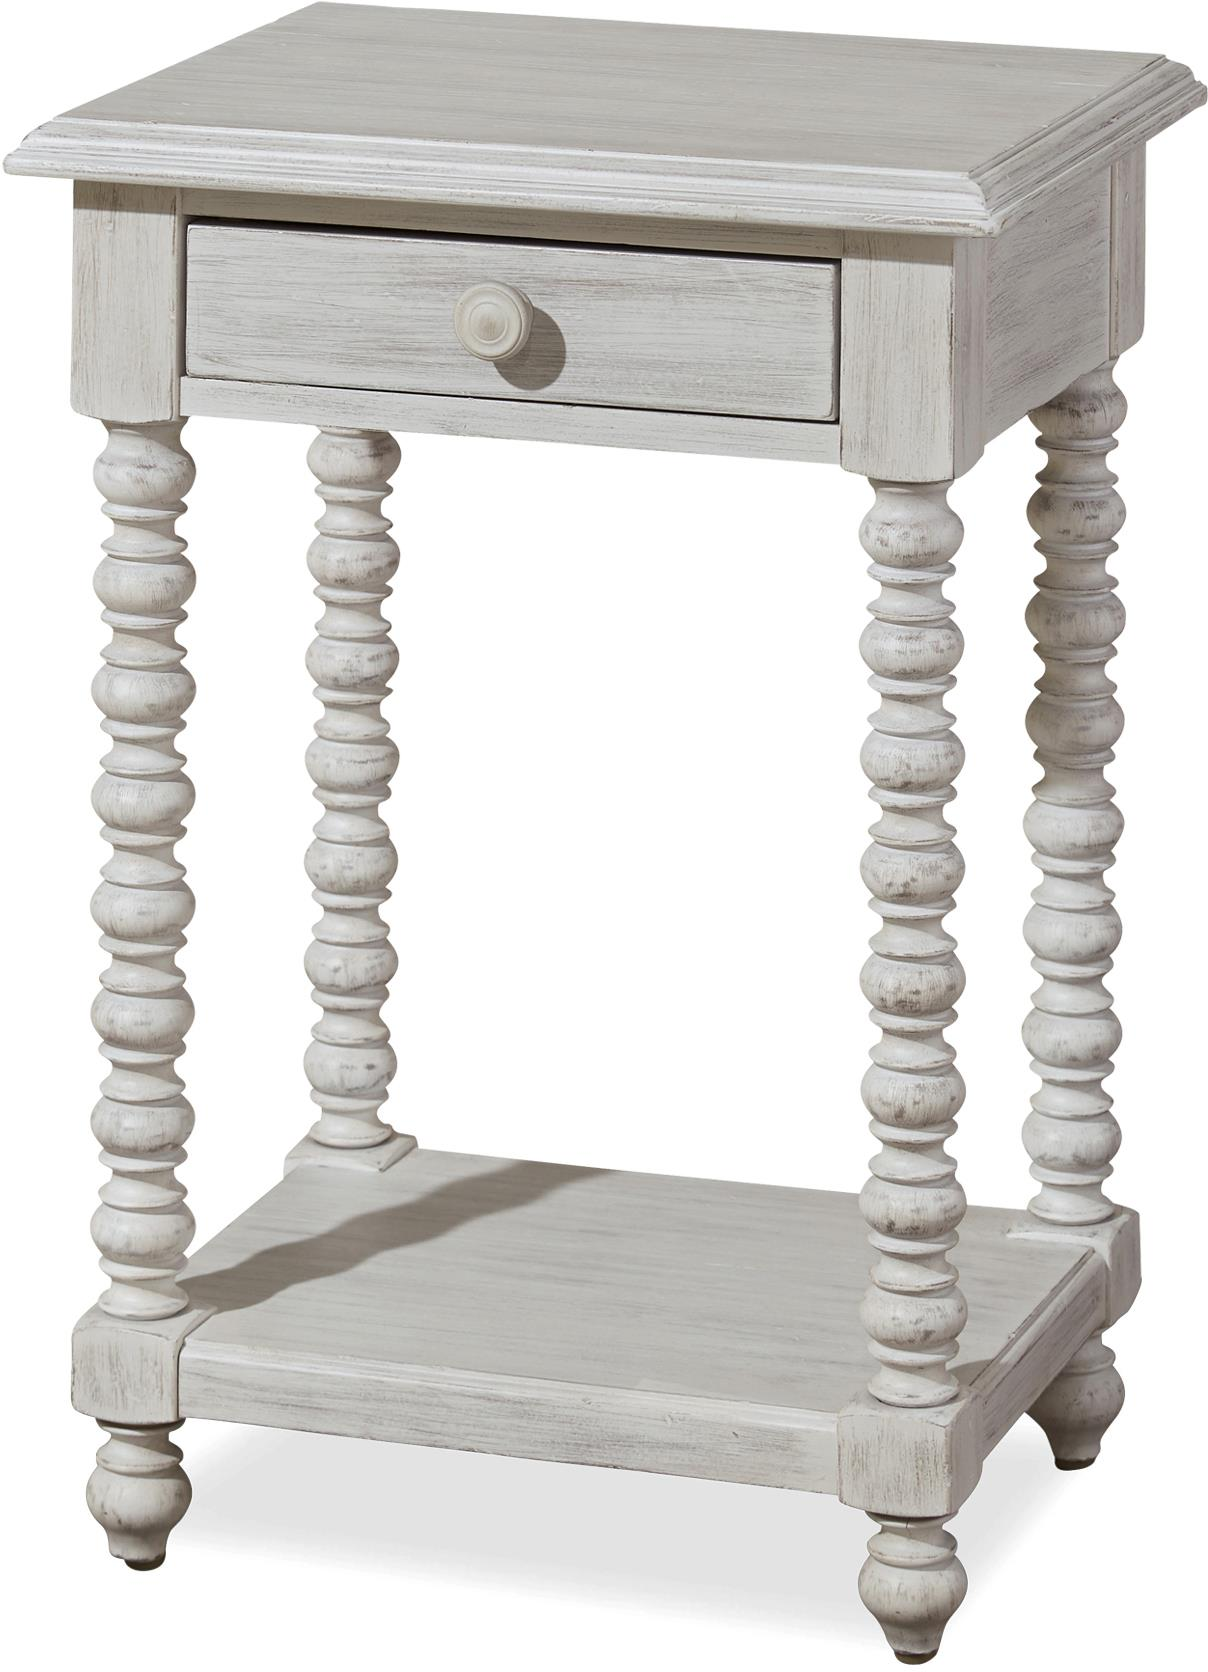 Paula Deen by Universal Dogwood Side Table - Item Number: 597827